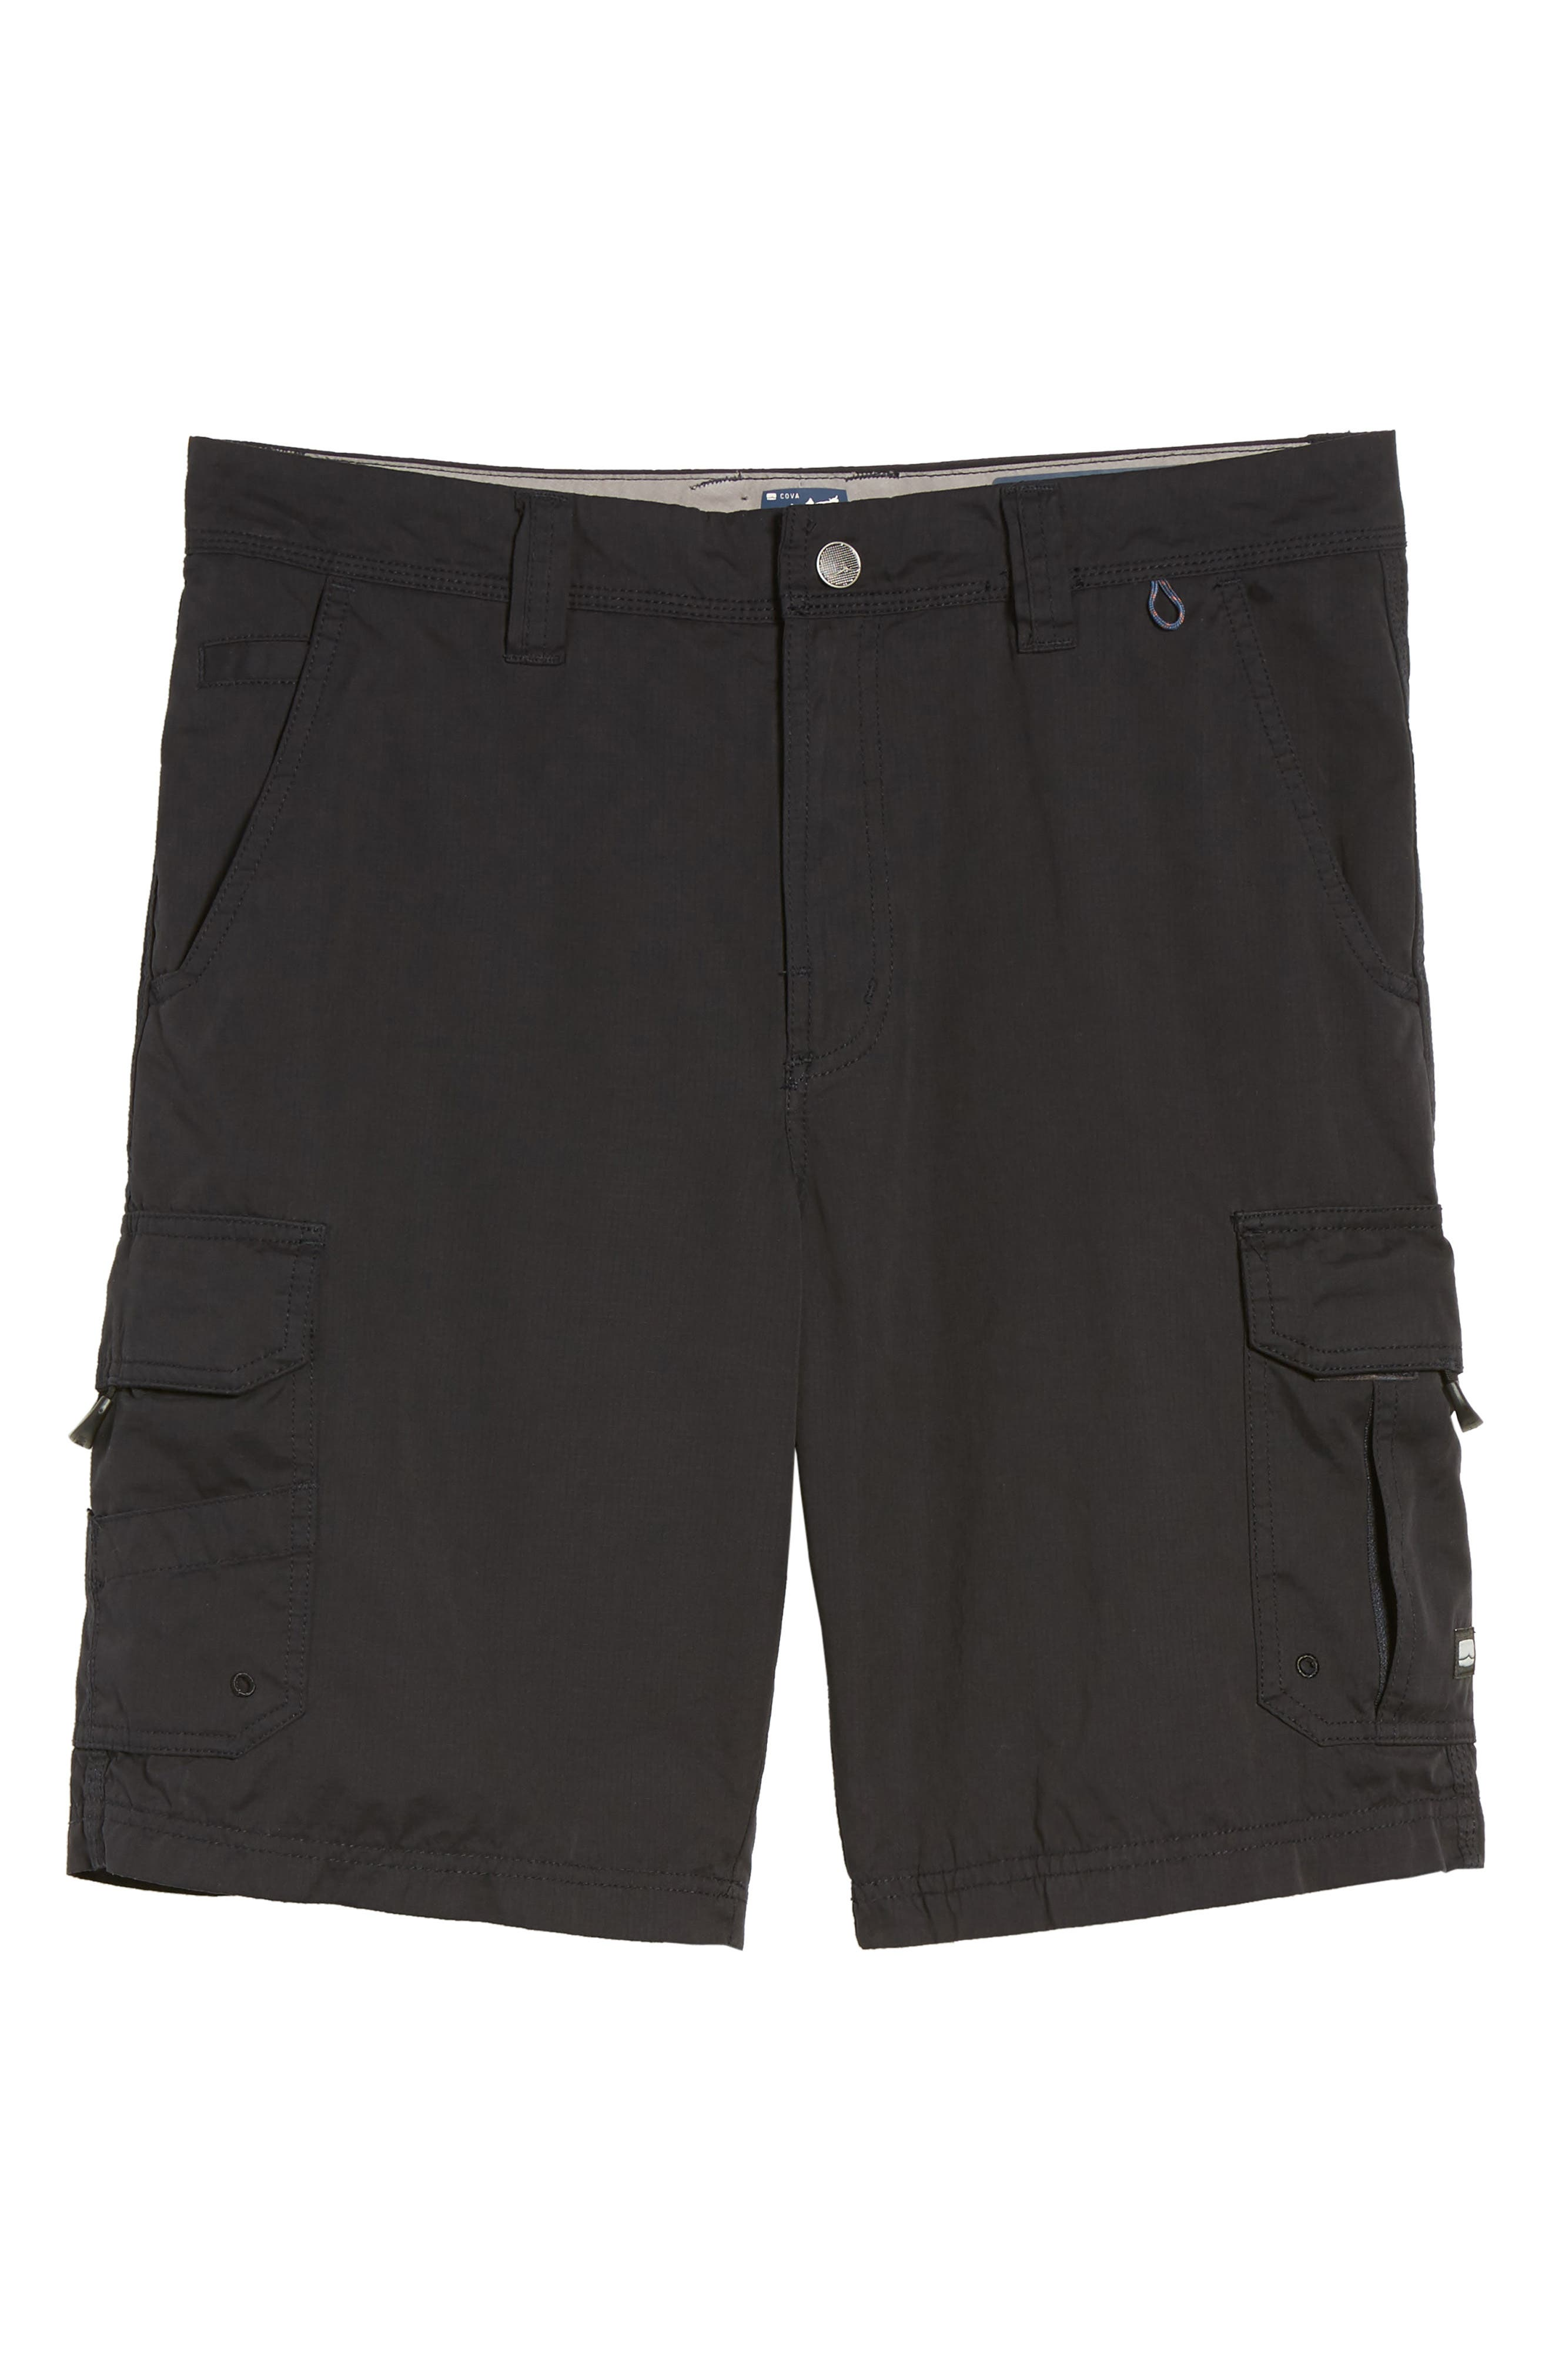 Catch & Release Regular Fit Hybrid Cargo Shorts,                             Alternate thumbnail 6, color,                             Charcoal